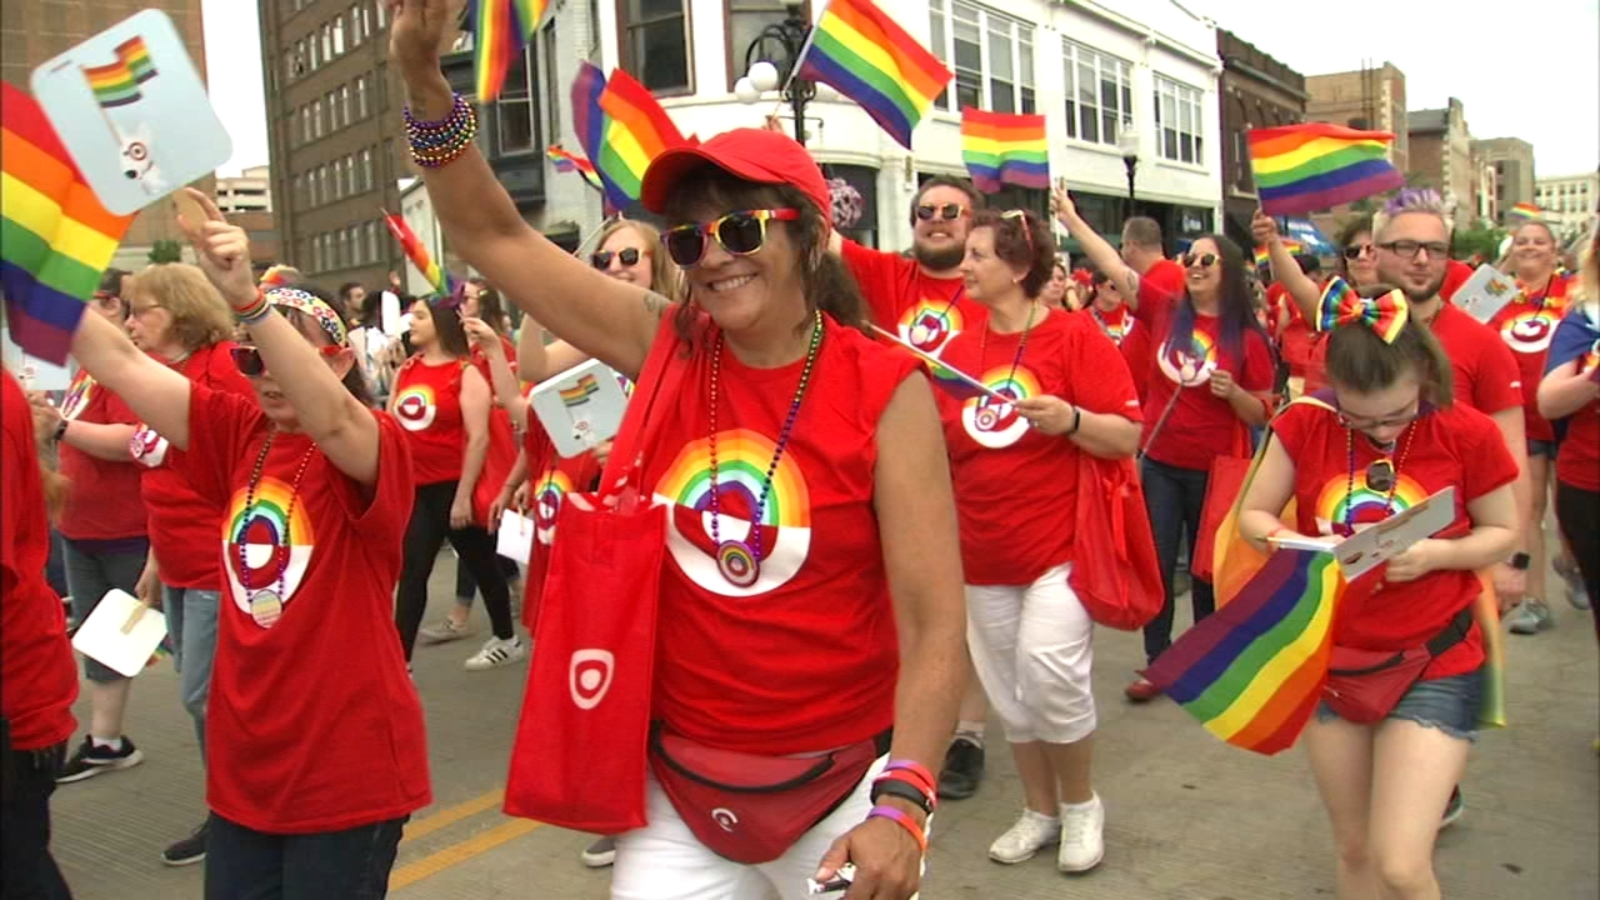 Aurora Pride Parade steps off after previous cancellation